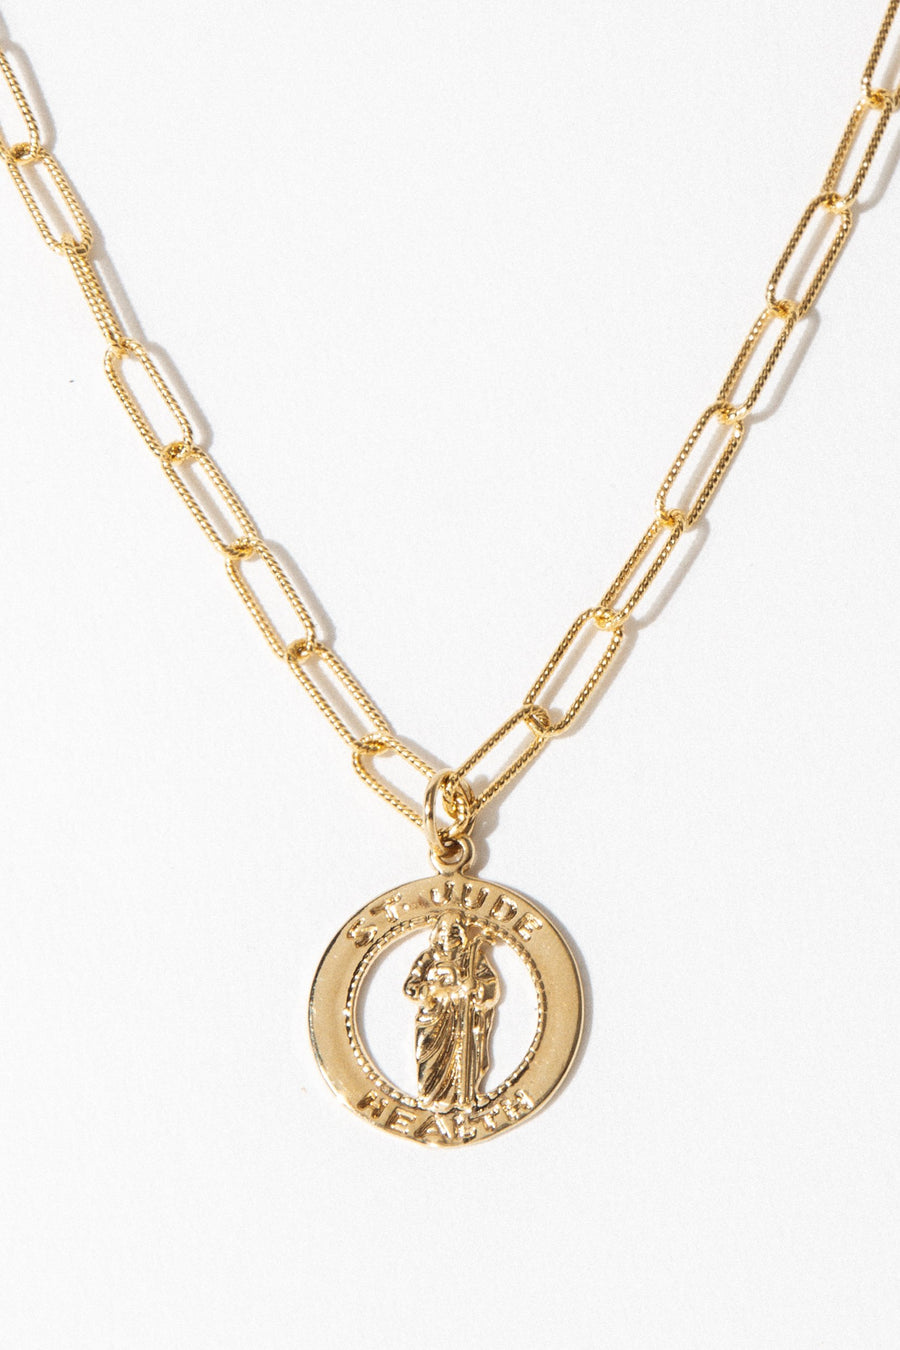 Goddess Jewelry 16 Inches / Gold St. Jude Necklace